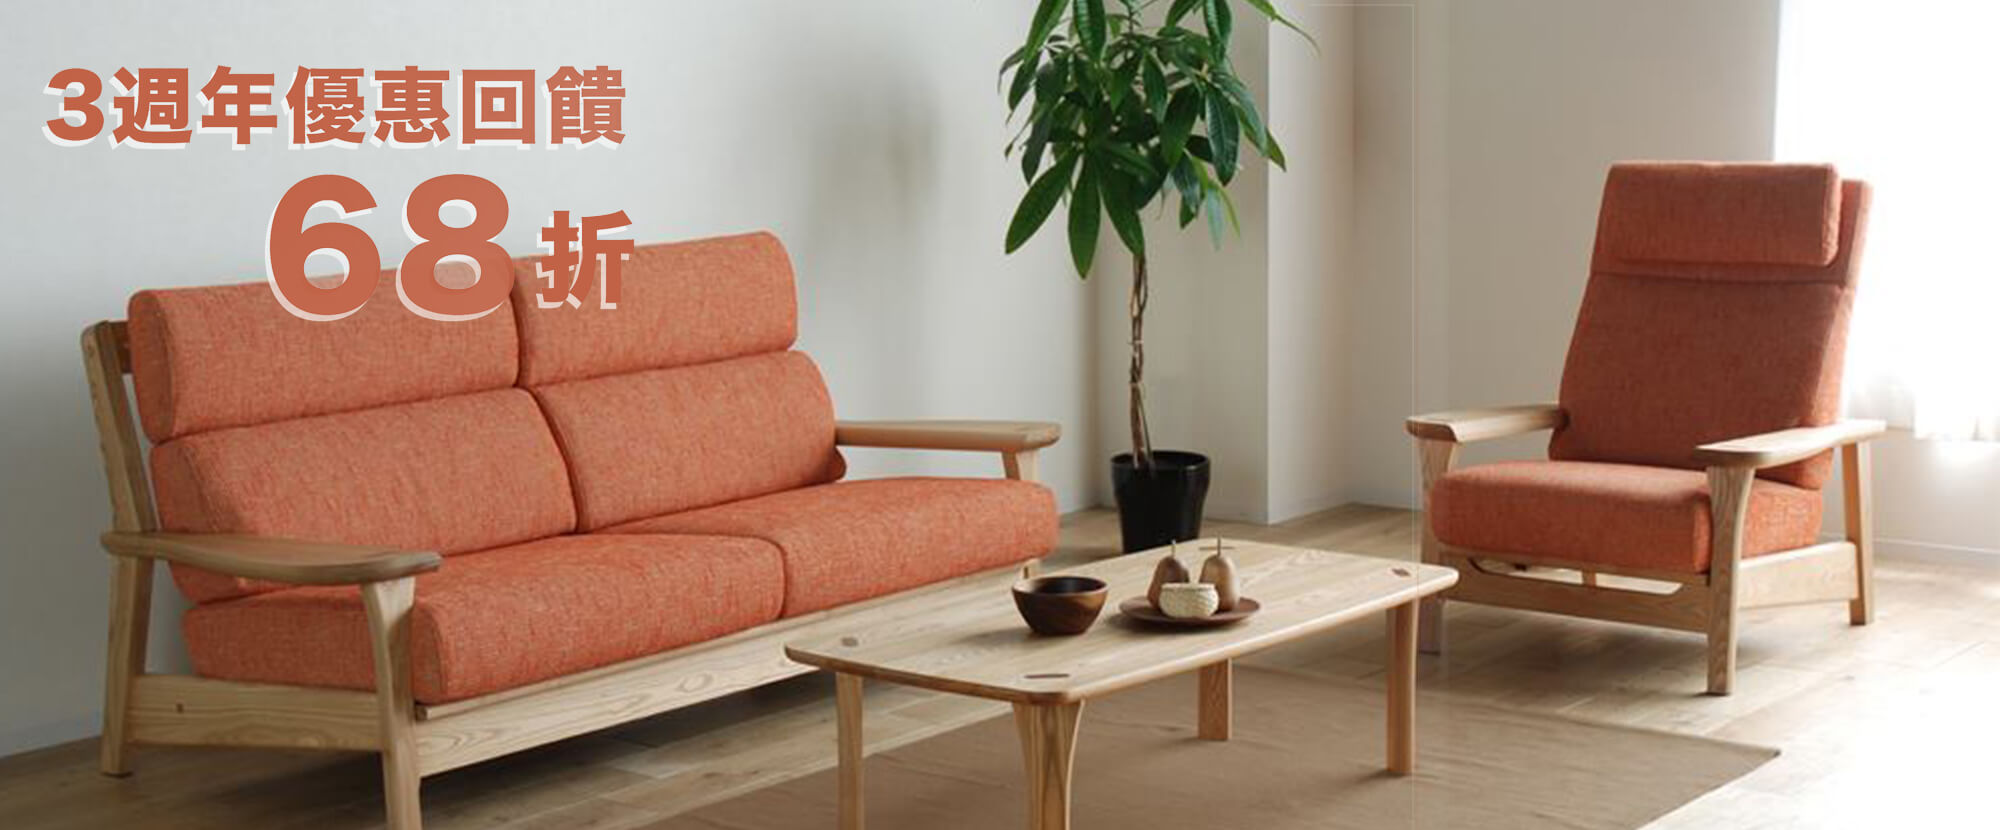 日本家具專門店-Japan Wooden Furniture in Big Sale (Main)